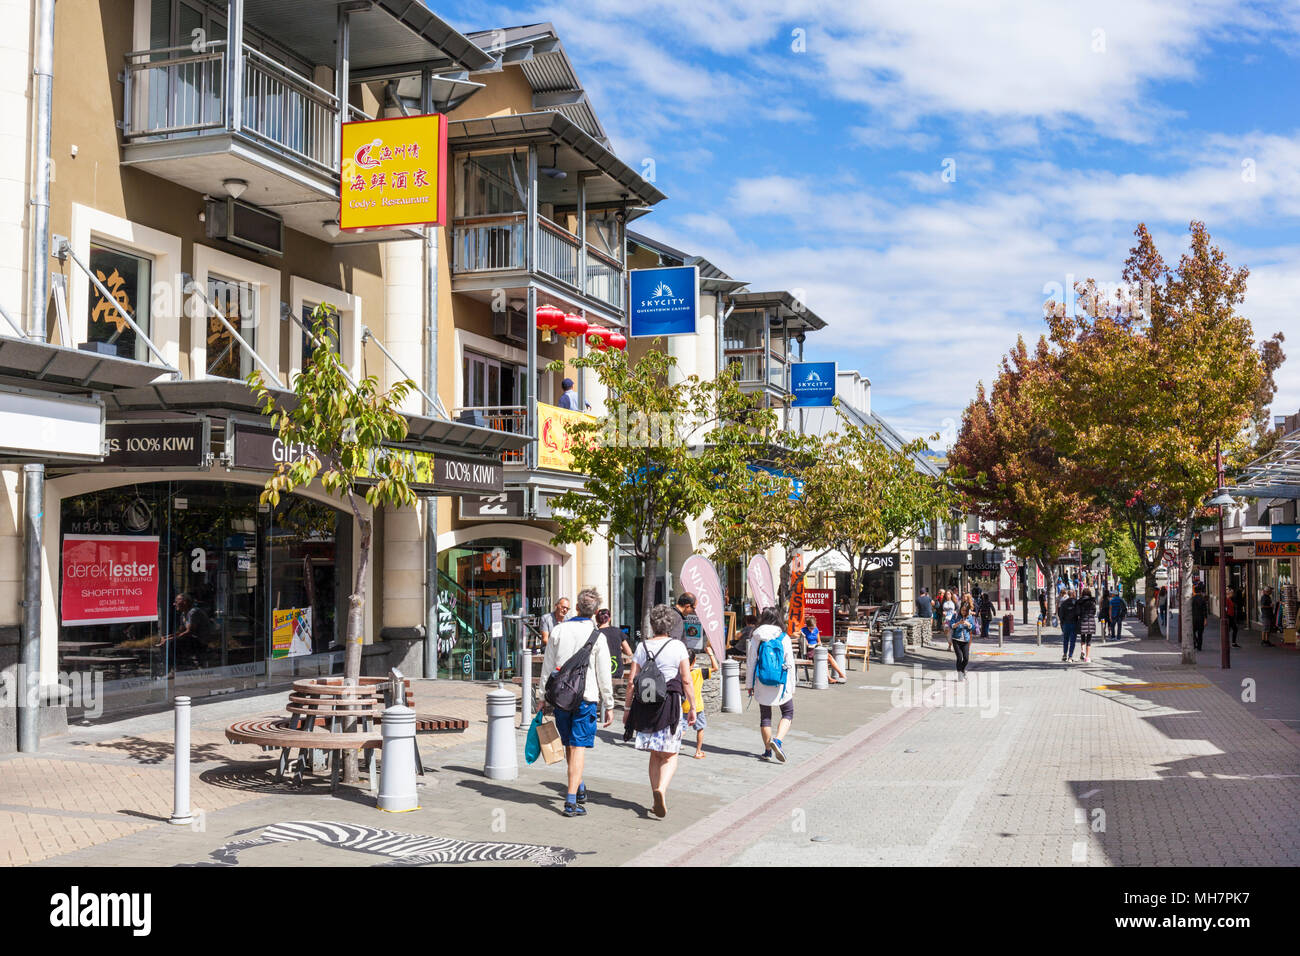 Queenstown South Island new zealand tourists in downtown Queenstown on a busy shopping street Beach street Queentown new zealand nz - Stock Image